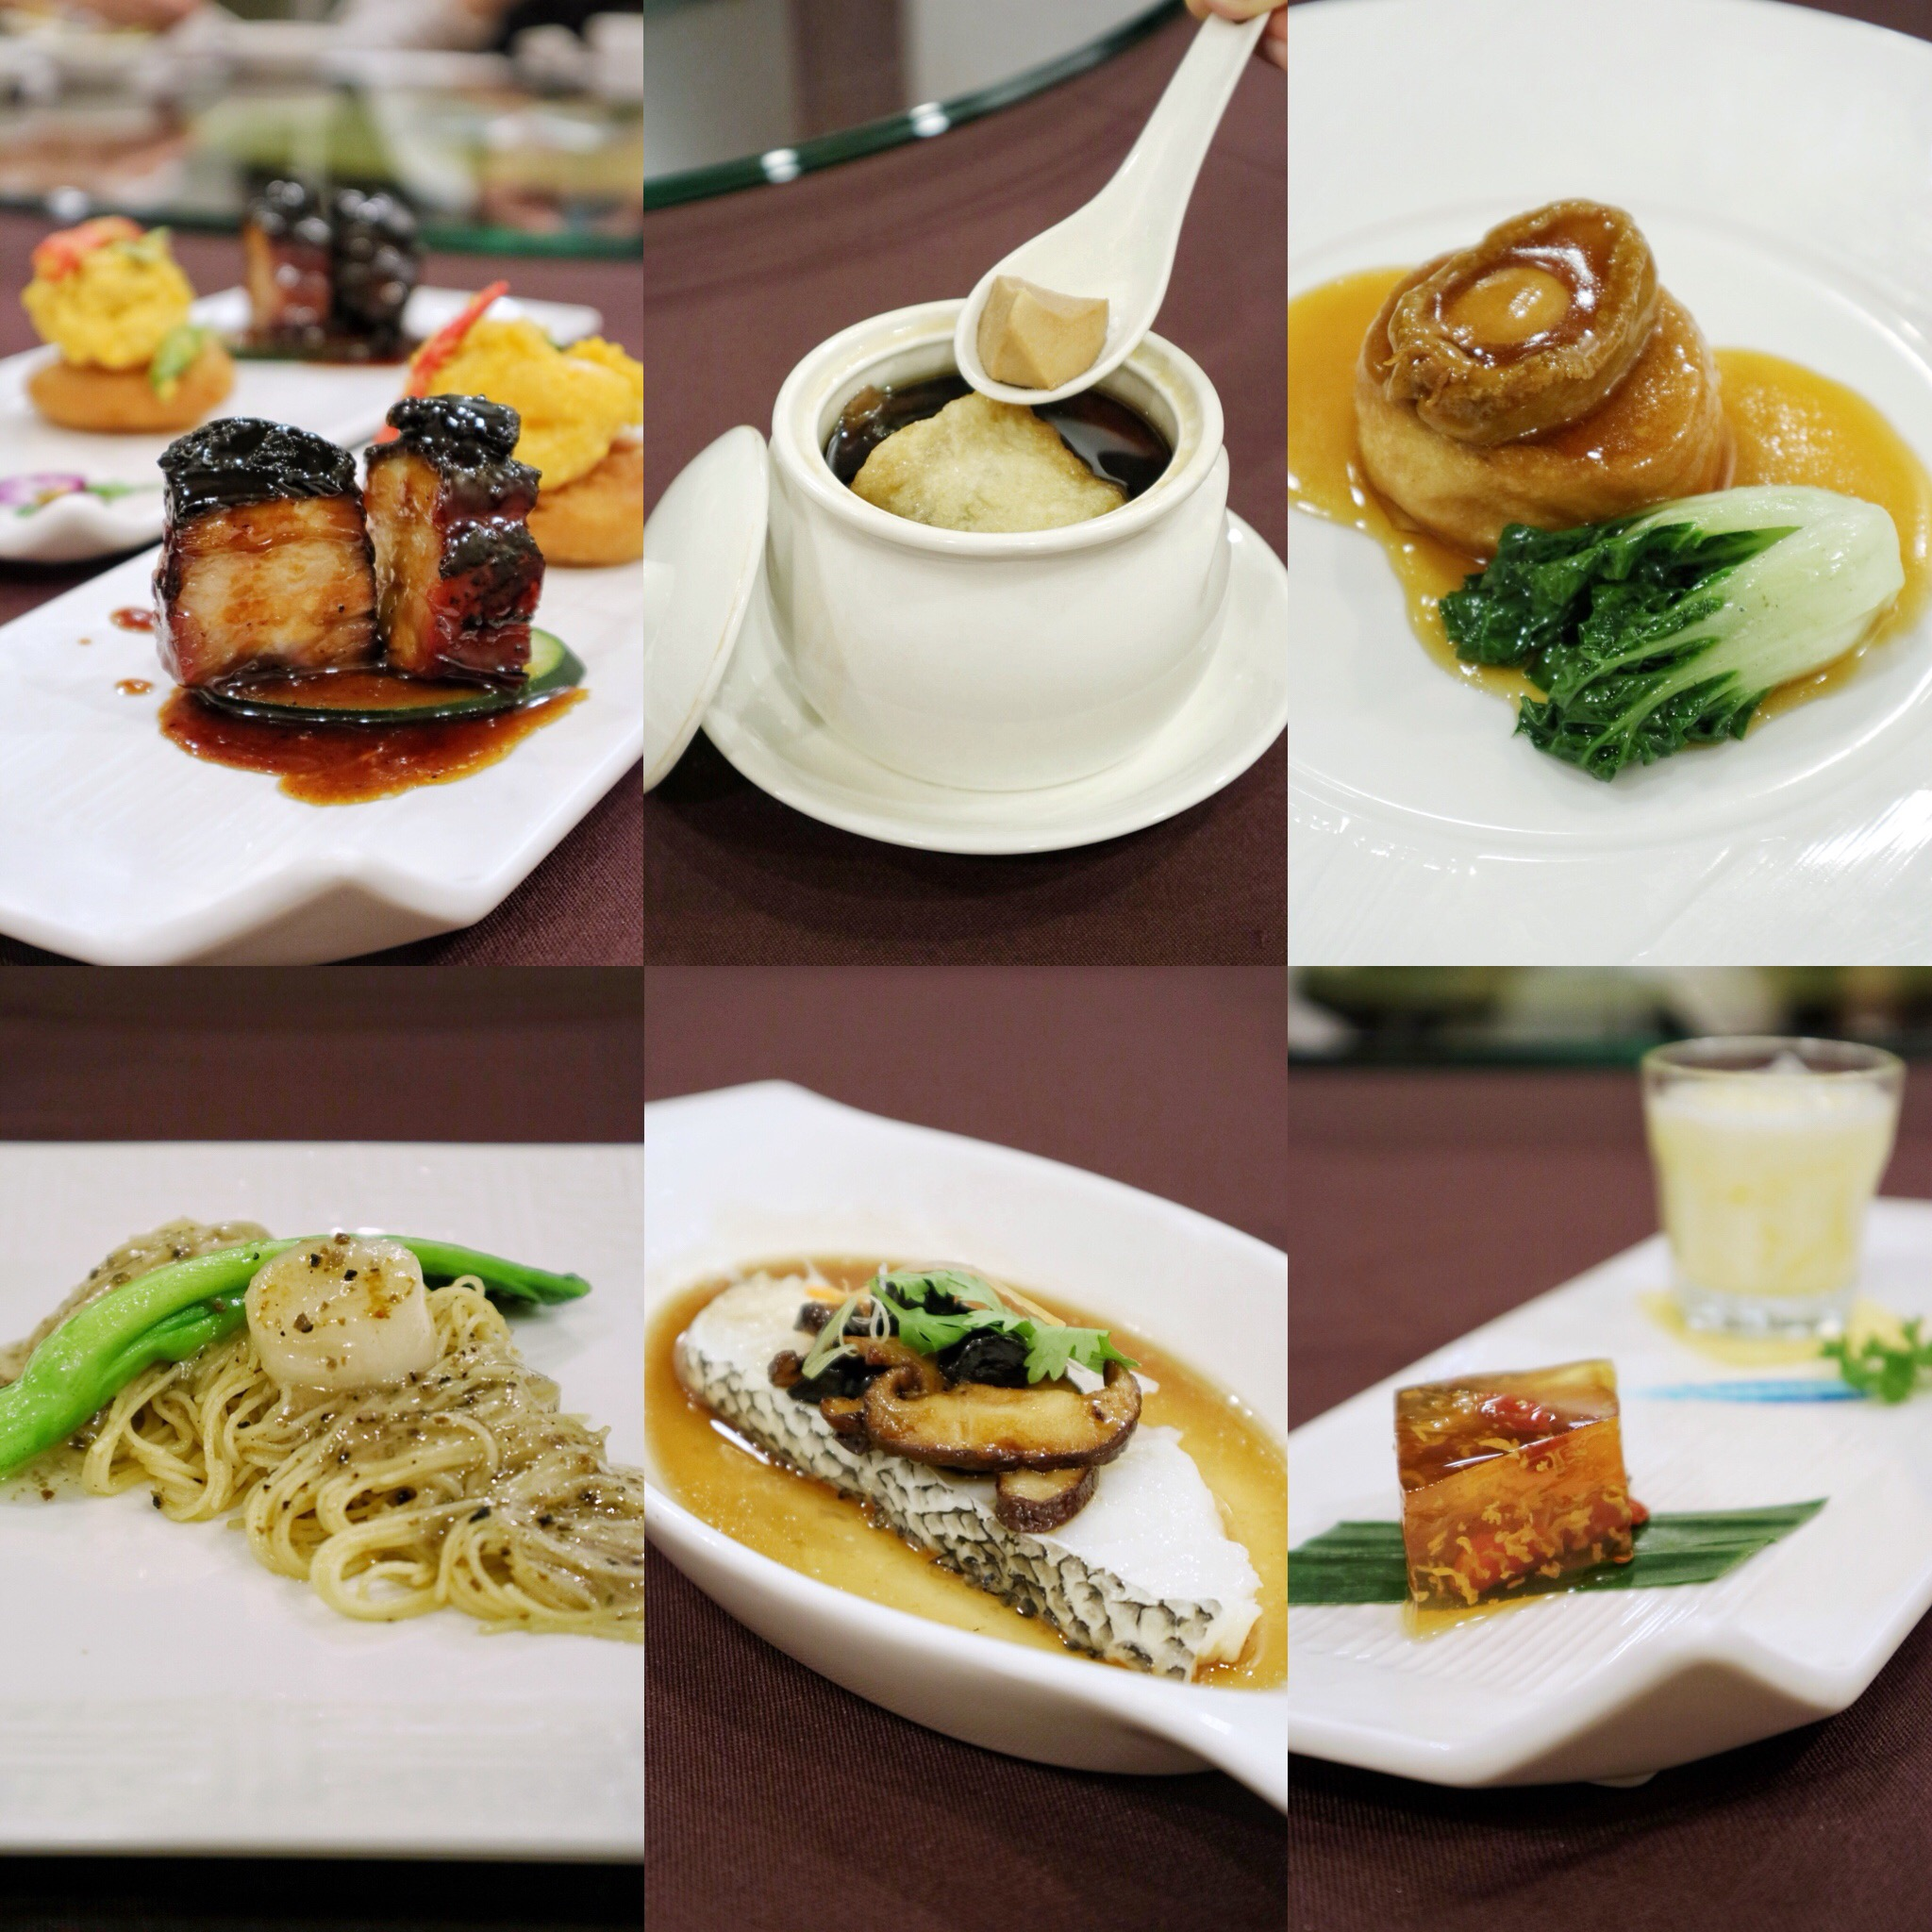 First Culinary: Launches Limited Time Only 6 Course Black Garlic Themed Menu